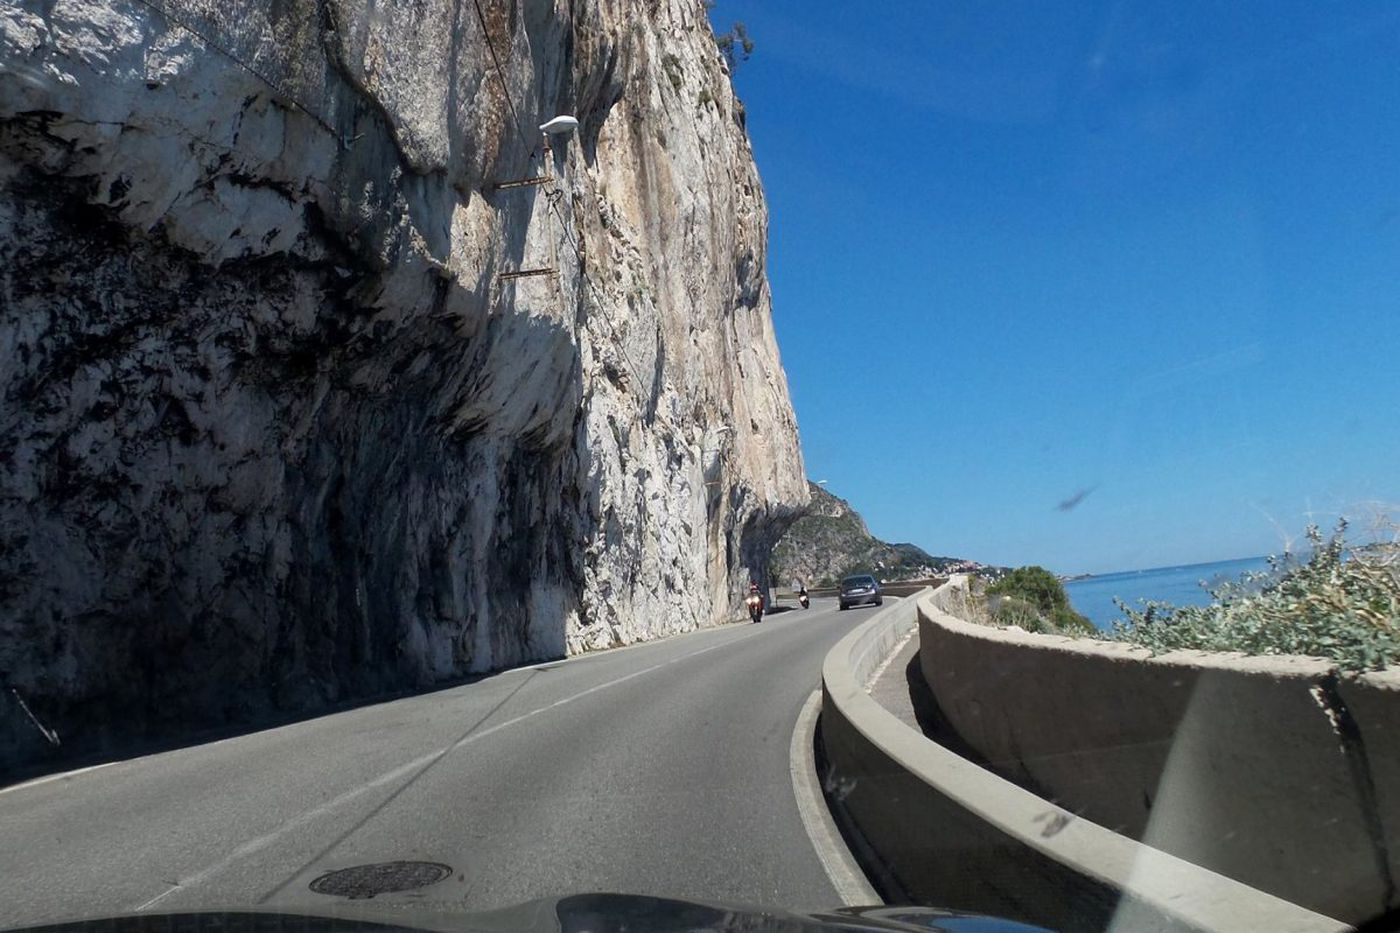 Philly drivers would feel at home on Italy's highways